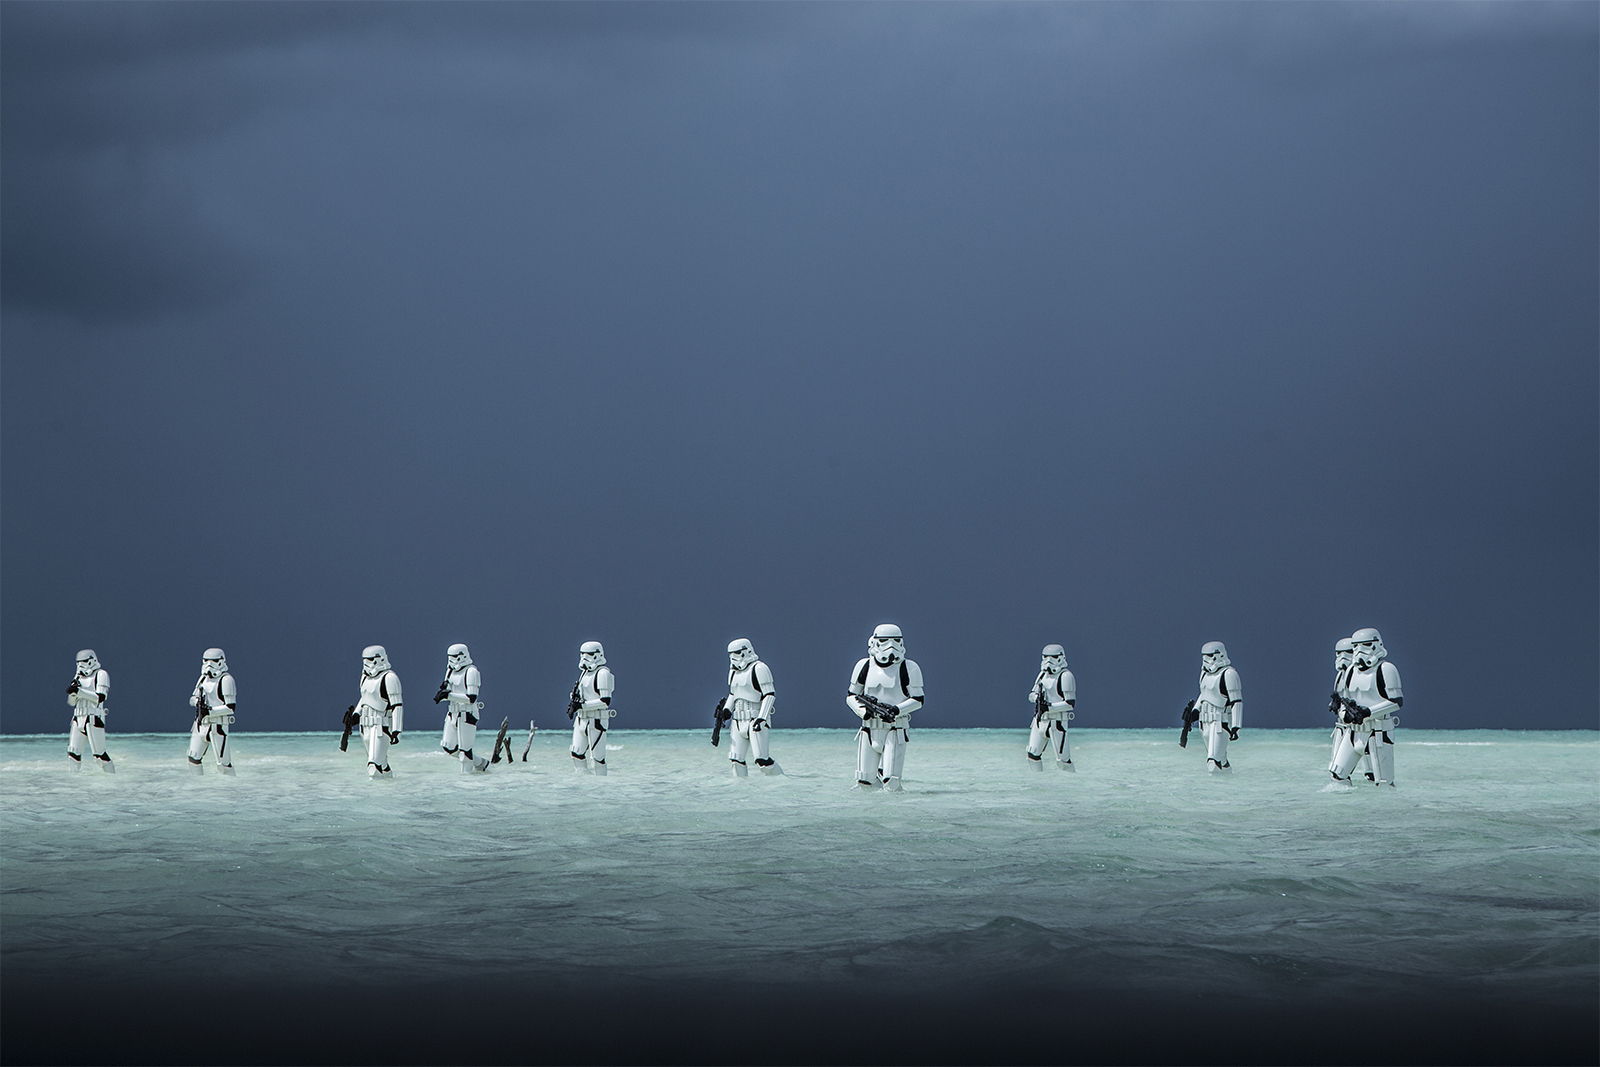 "slide 5 - Stormtroopers in the new Star Wars film ""Rogue One"" wade through the water of an alien ocean world."